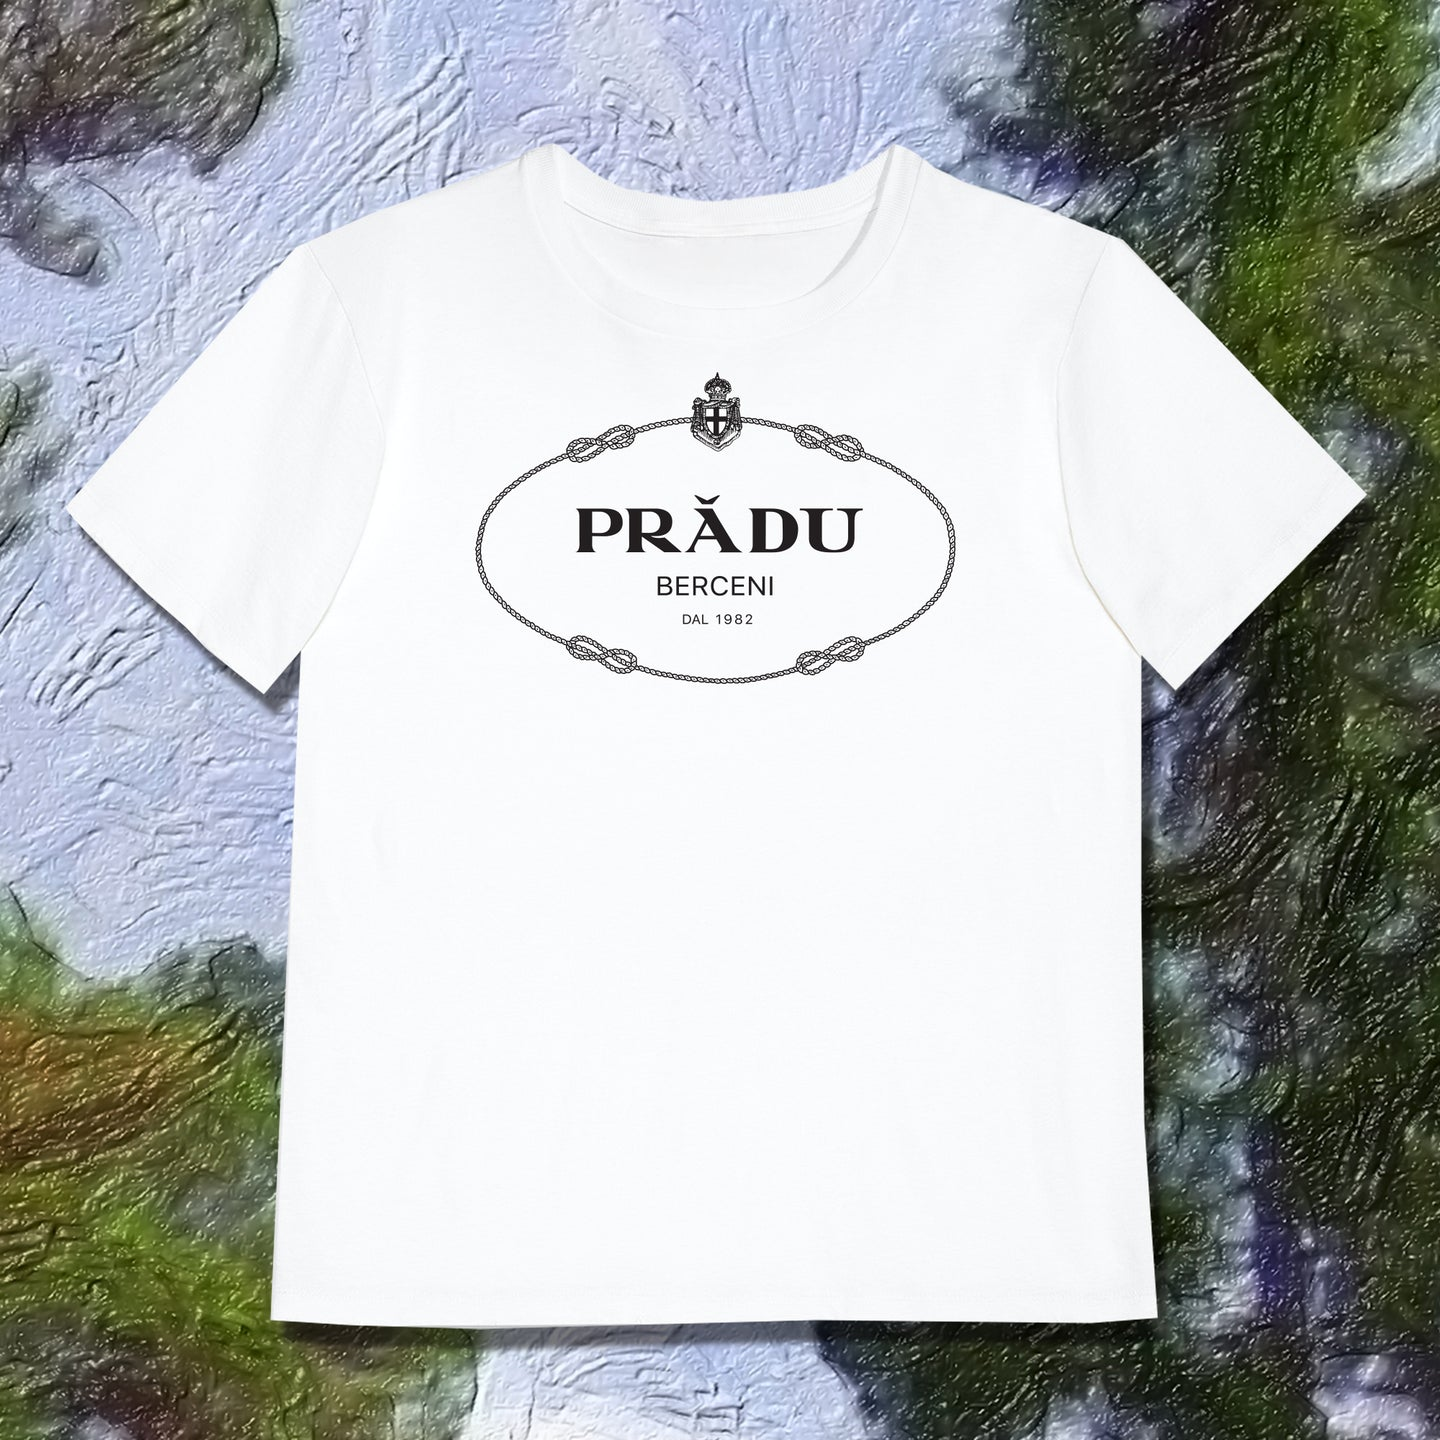 PRADU T-SHIRT - GUYS